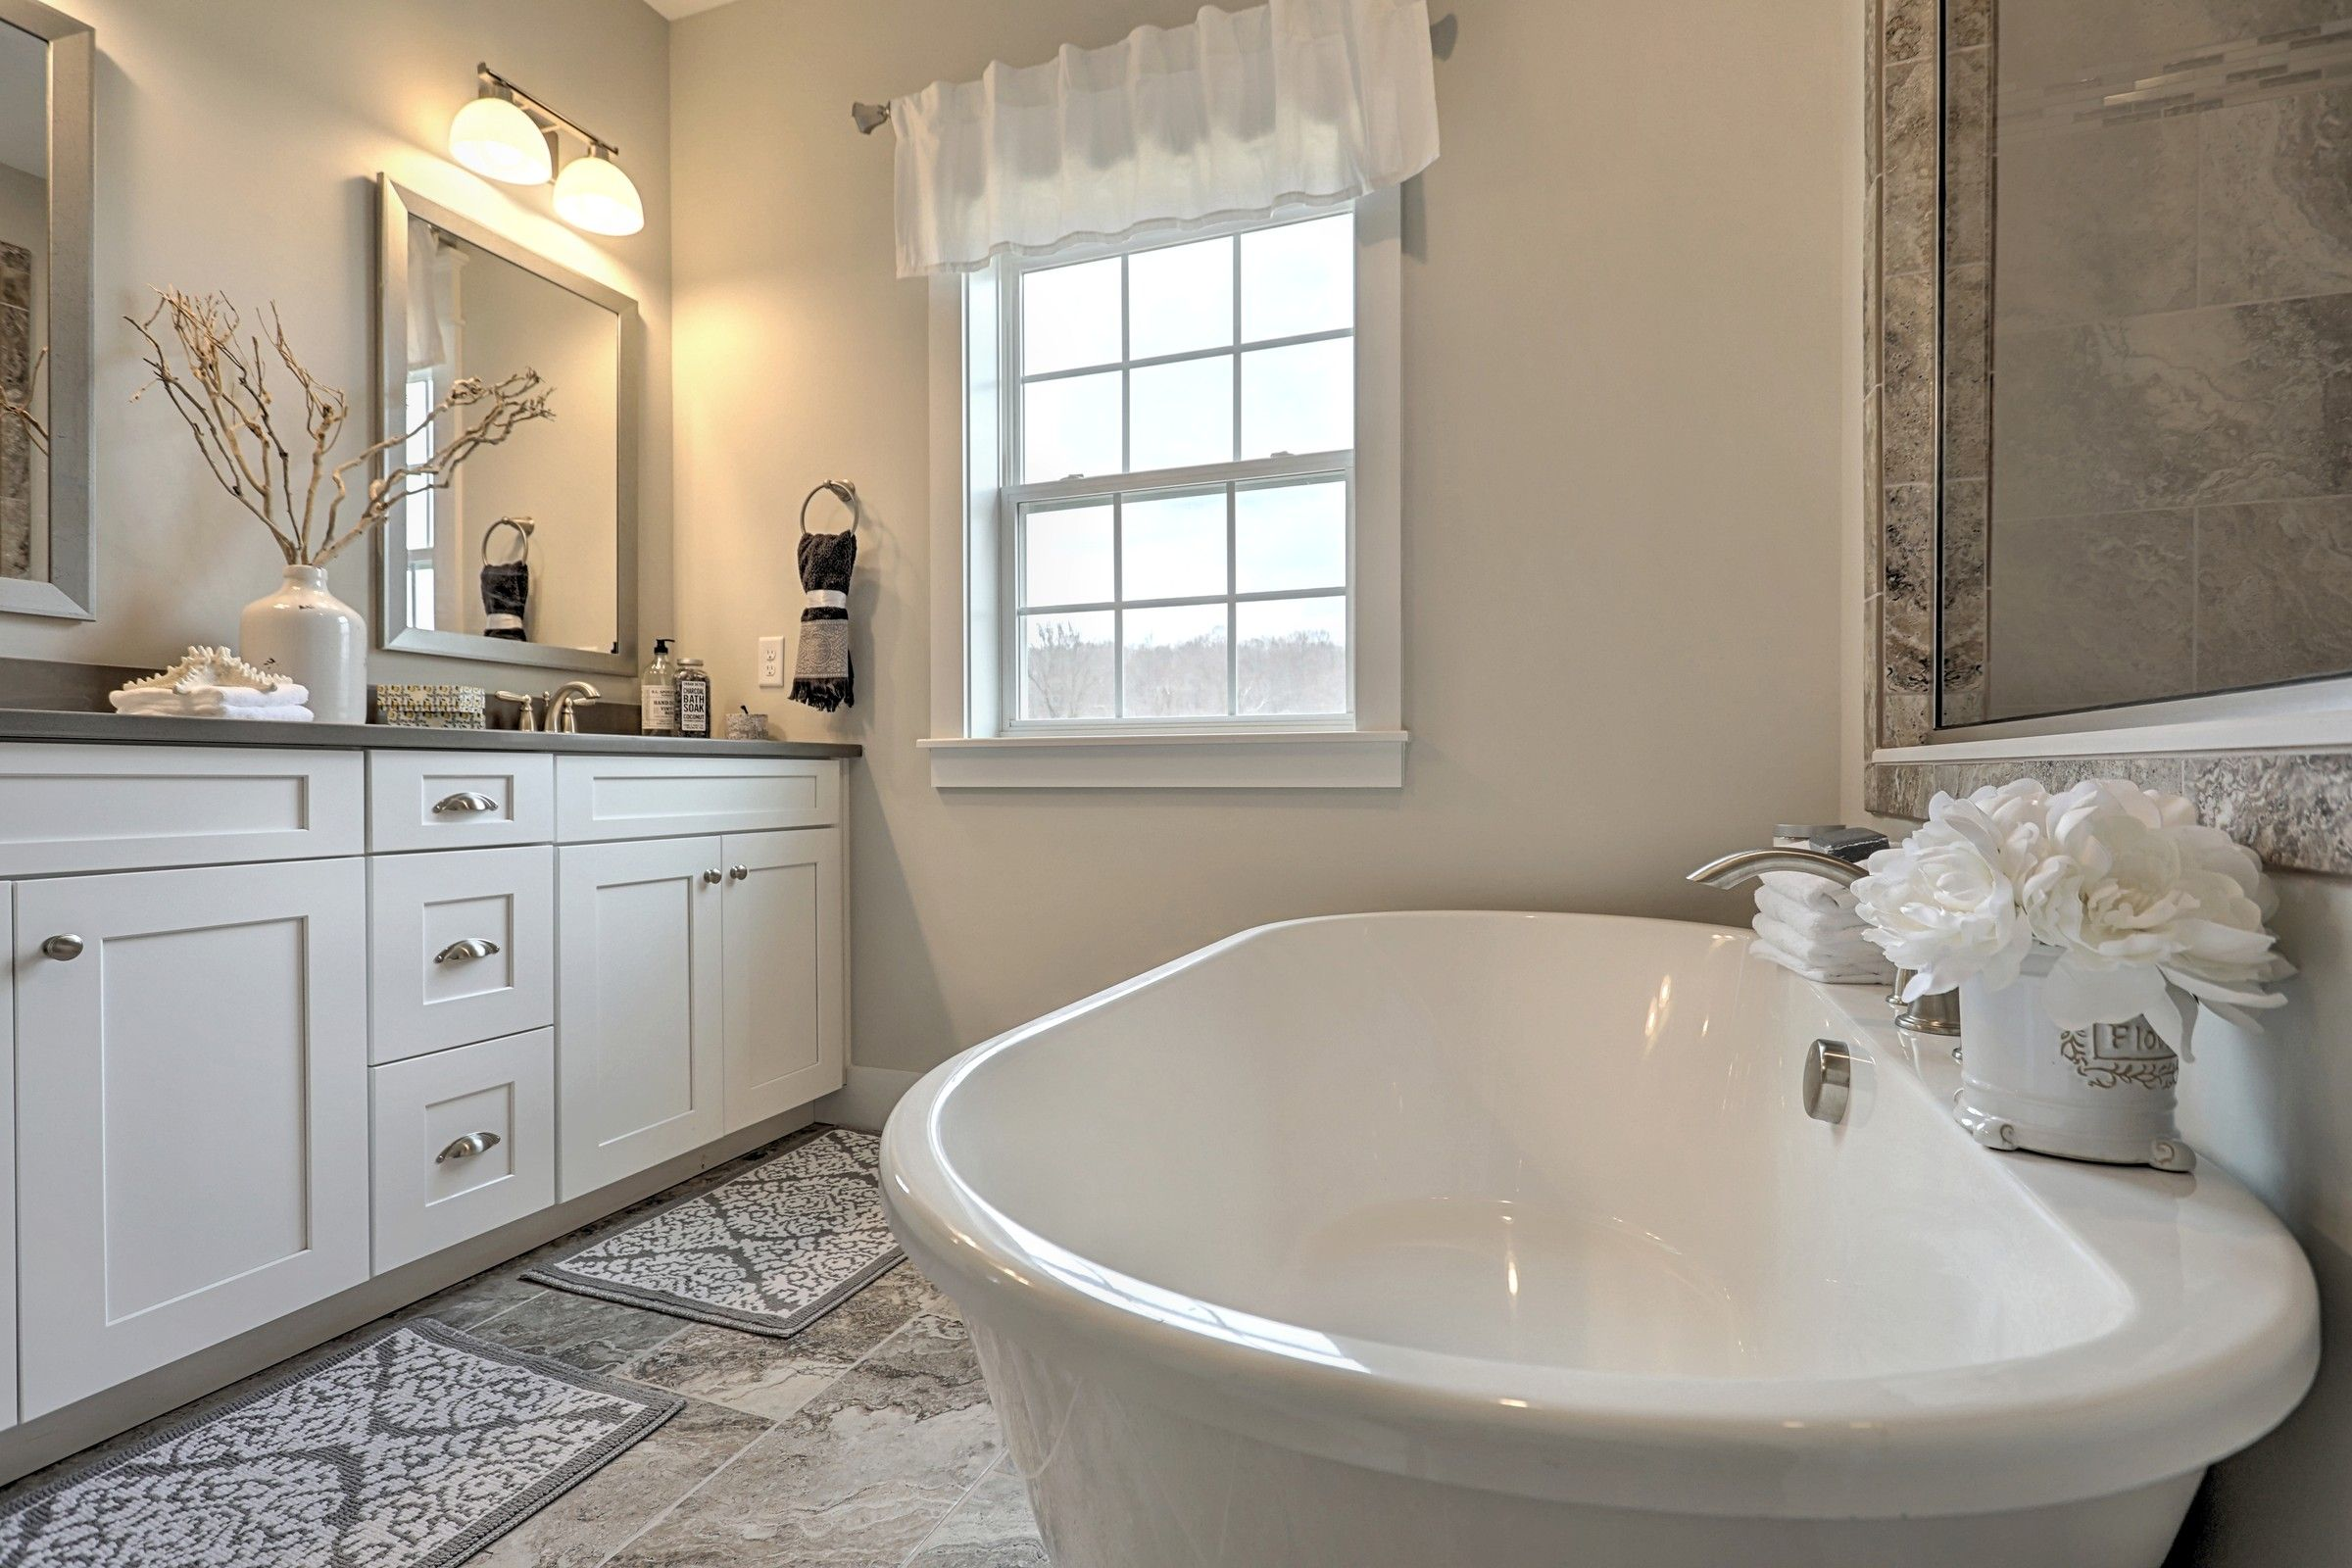 Bathroom featured in the Augusta Vintage By Keystone Custom Homes in York, PA